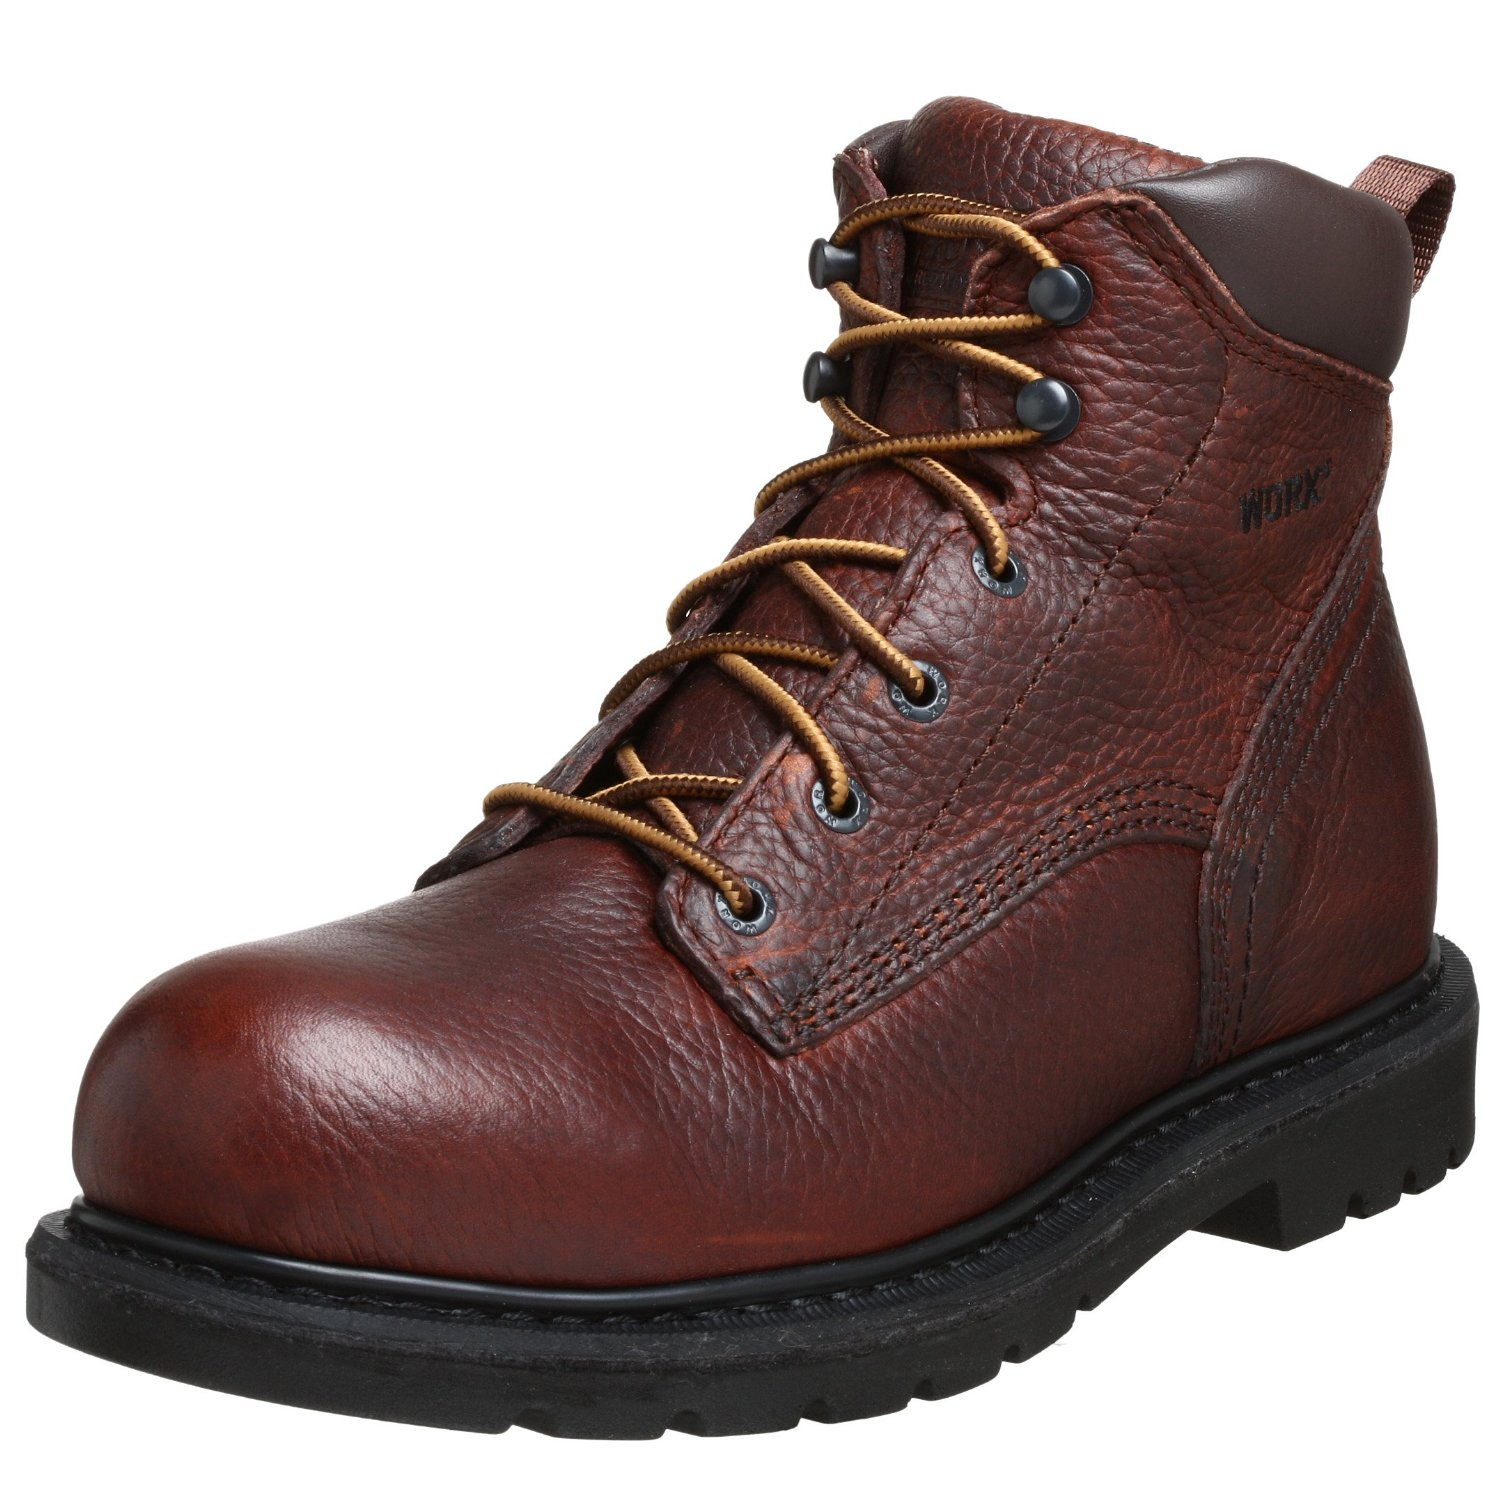 e02c483f35c Redwing Boots For Men - Yamsixteen